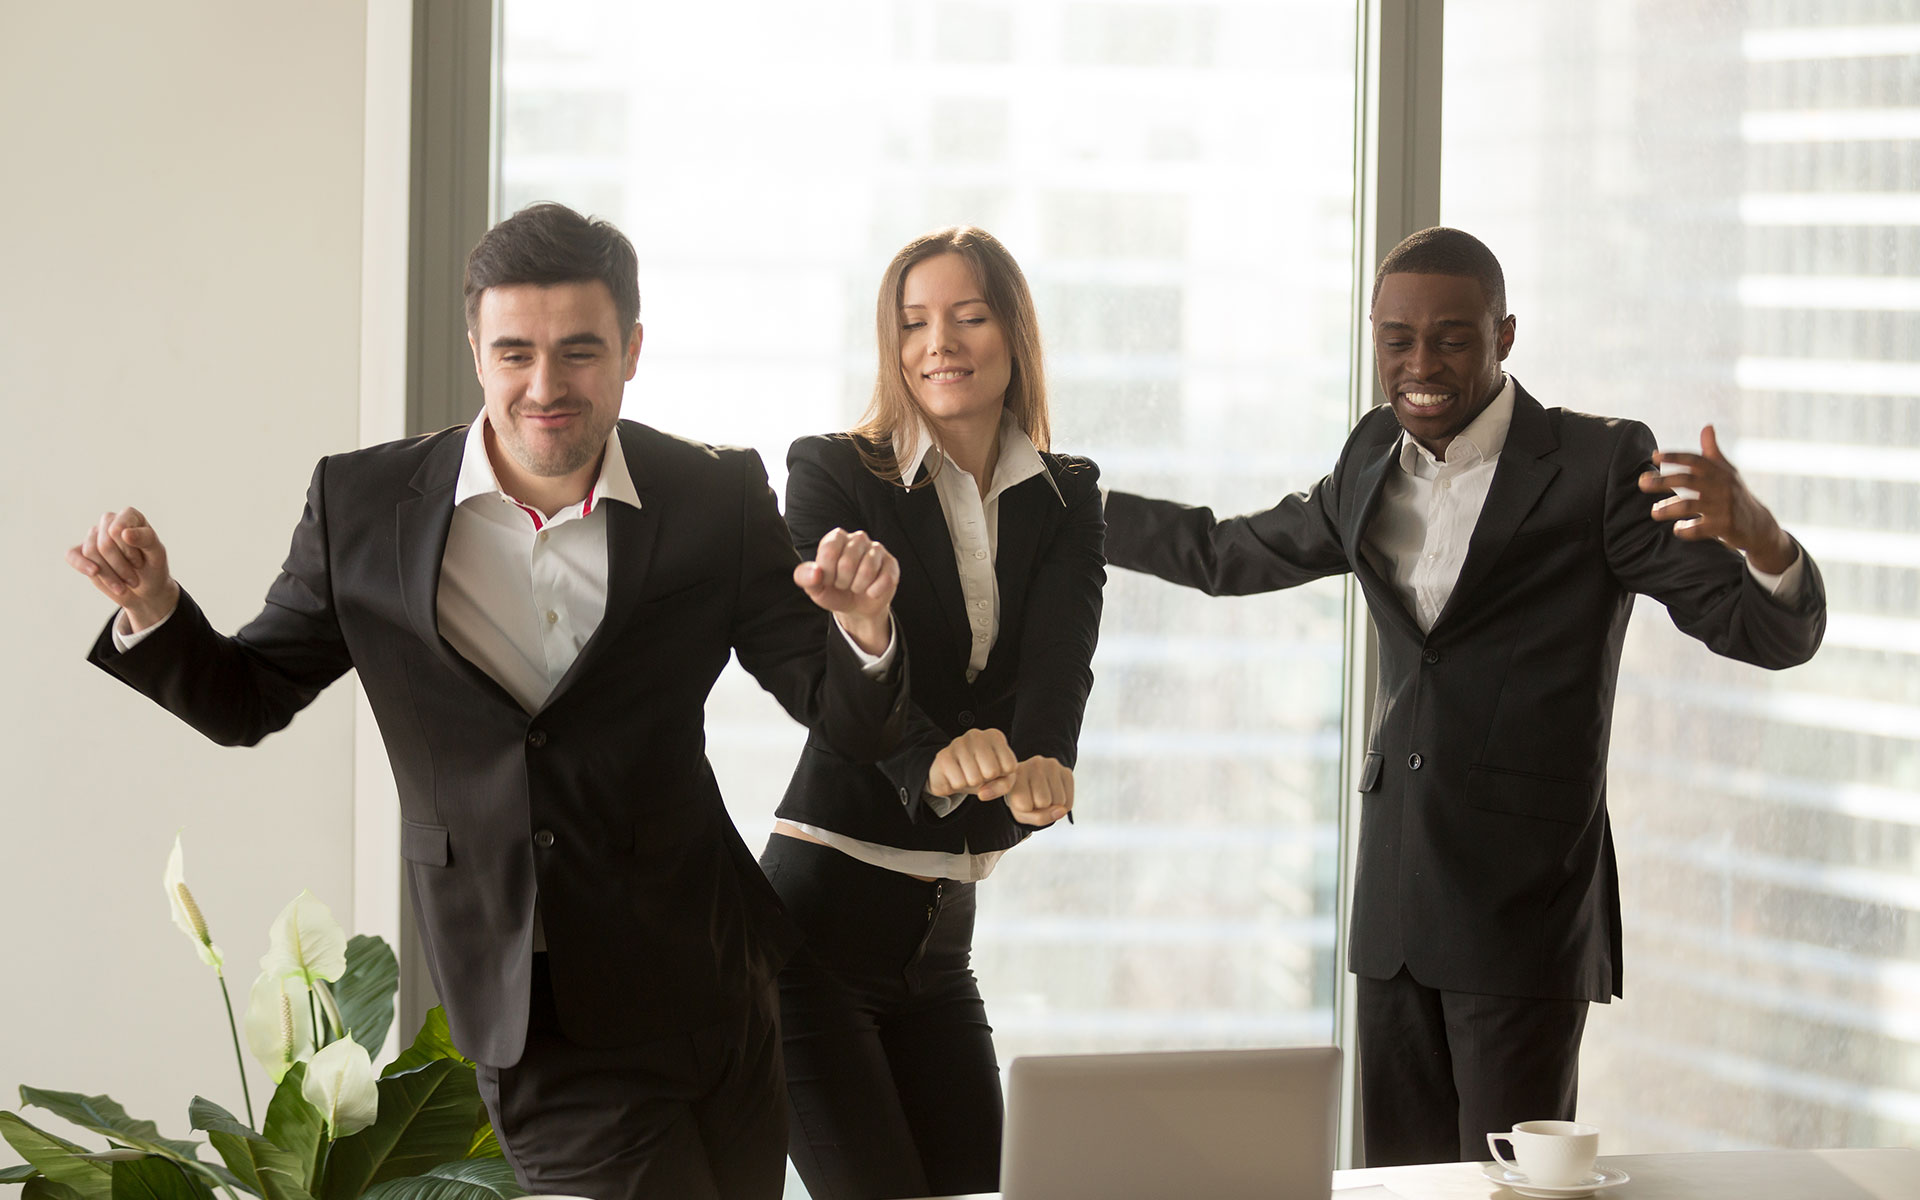 Coworkers in suits dance in conference room